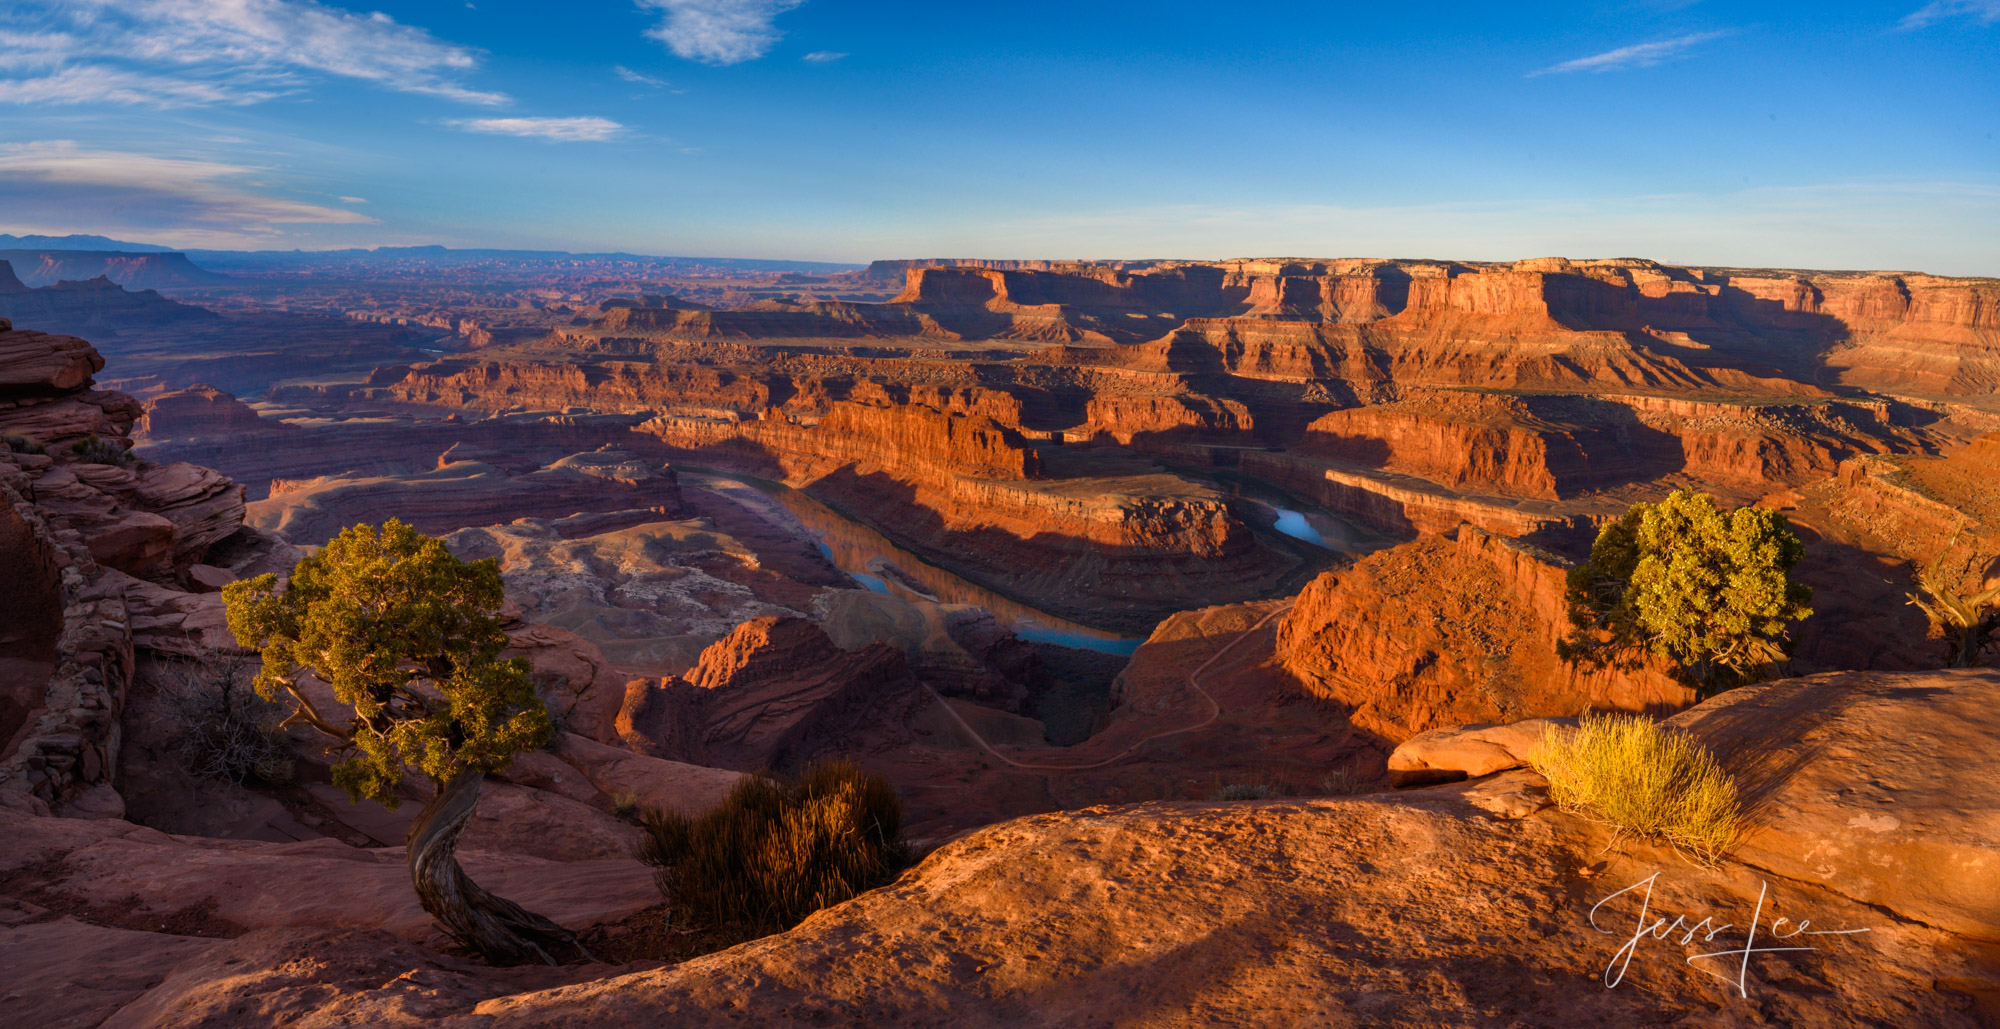 Deadhorse point overlook of the Colorado River